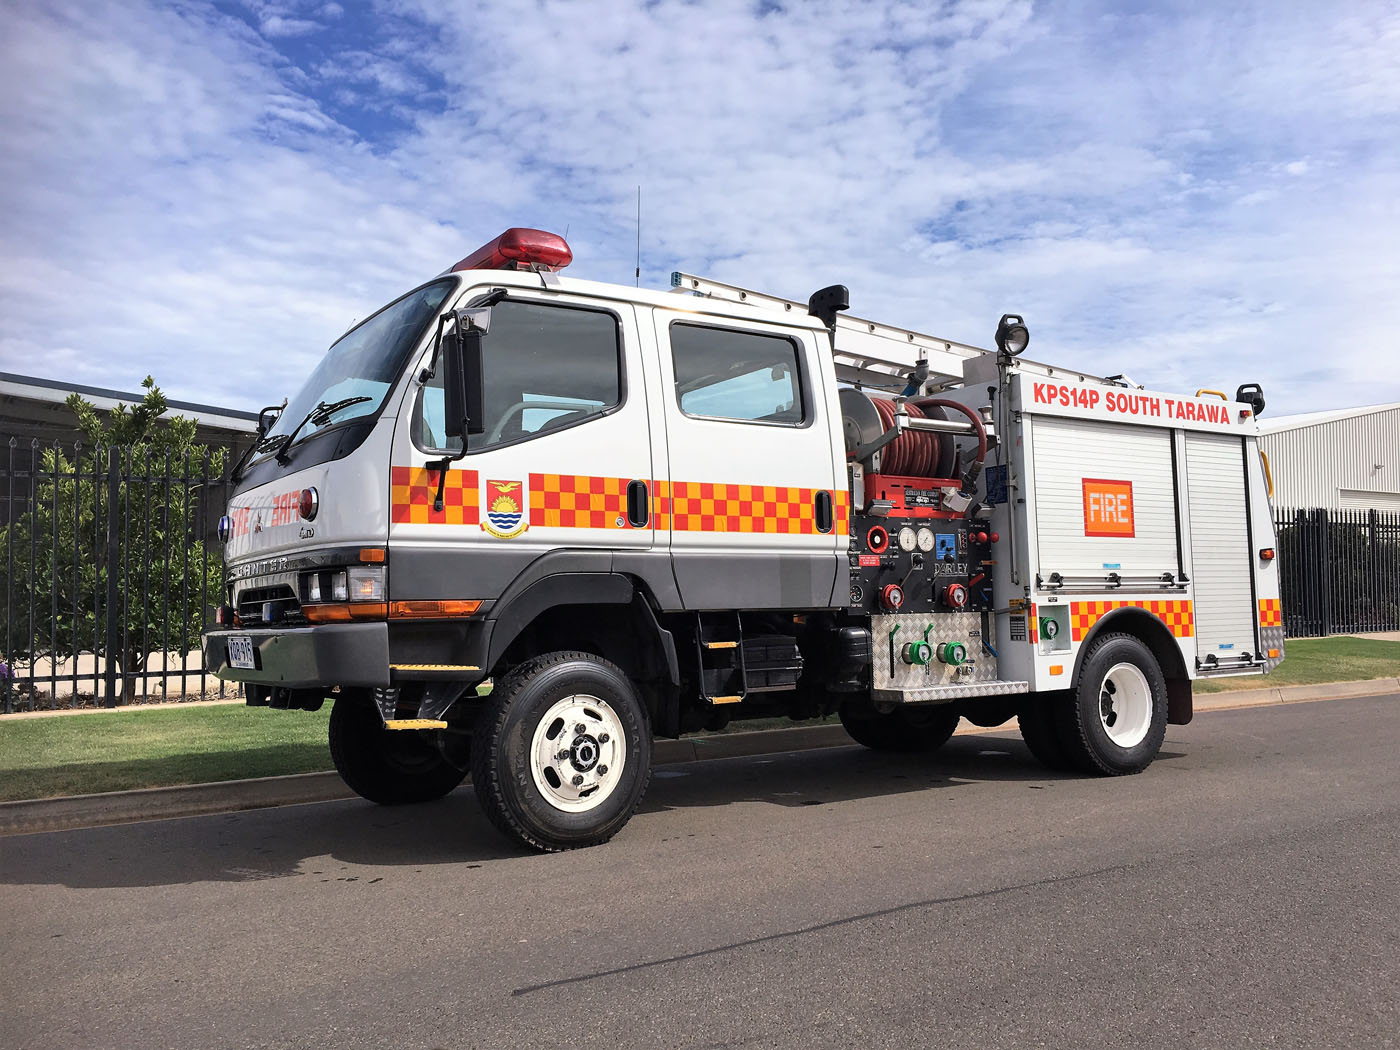 CFS Donation Vehicle